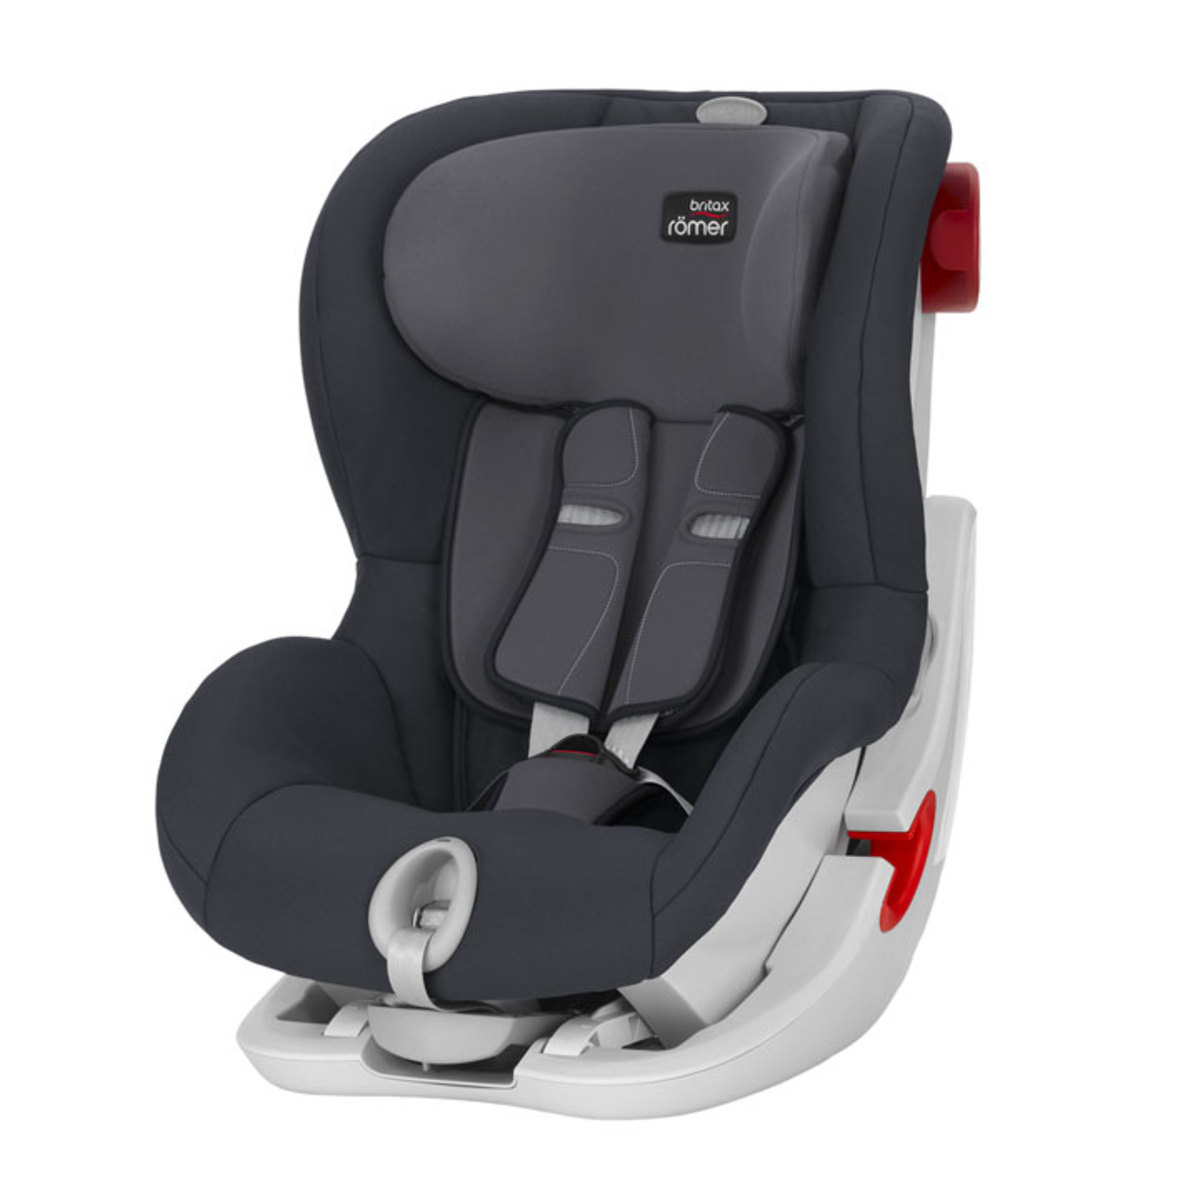 britax r mer si ge auto groupe 1 king ii ls storm grey si ge auto et coque britax r mer sur. Black Bedroom Furniture Sets. Home Design Ideas